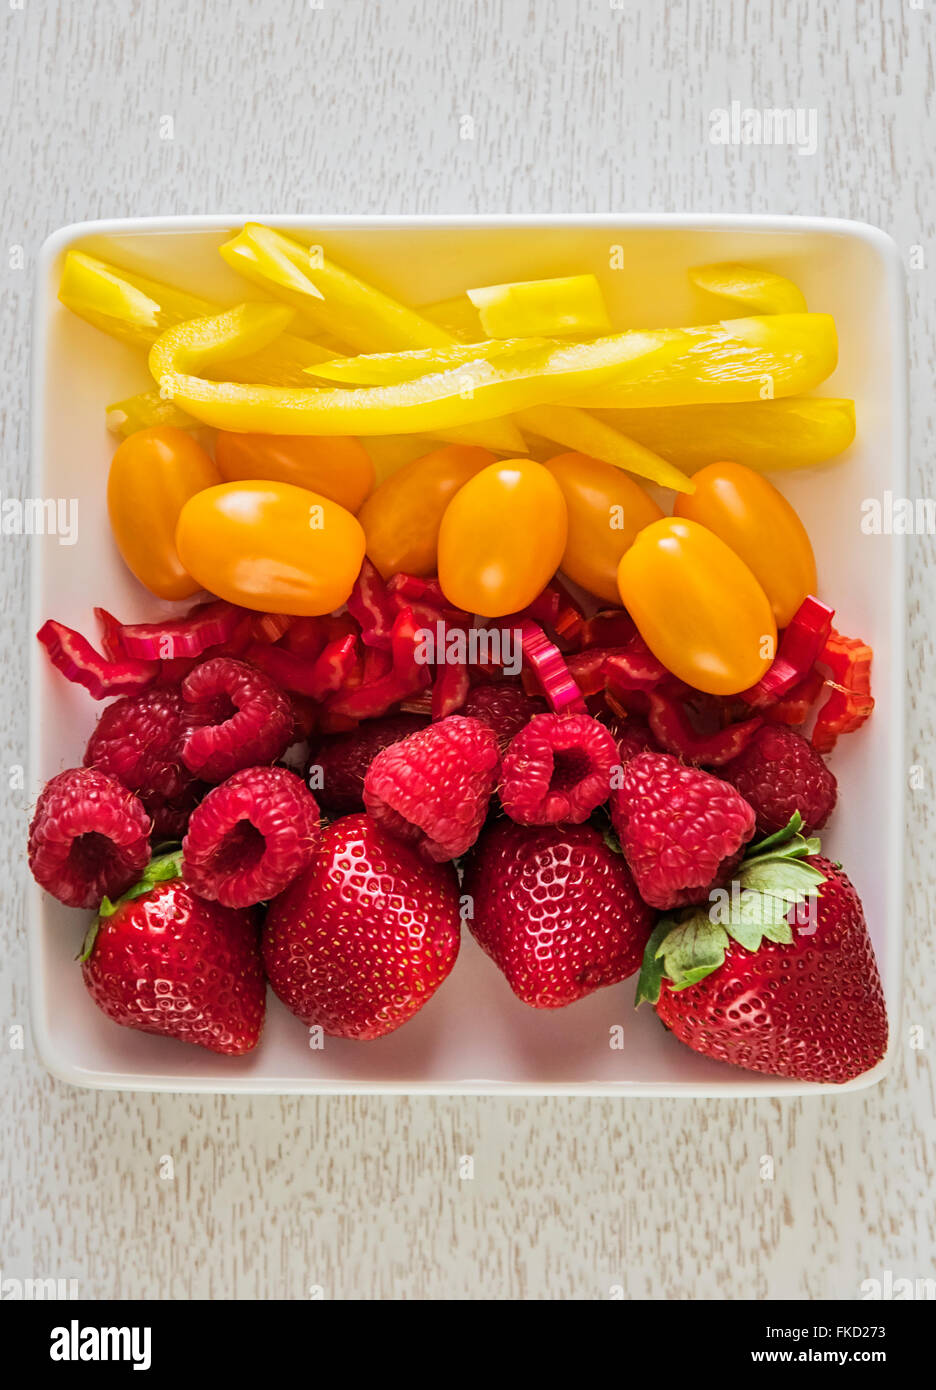 Fruit and vegetables on plate - Stock Image